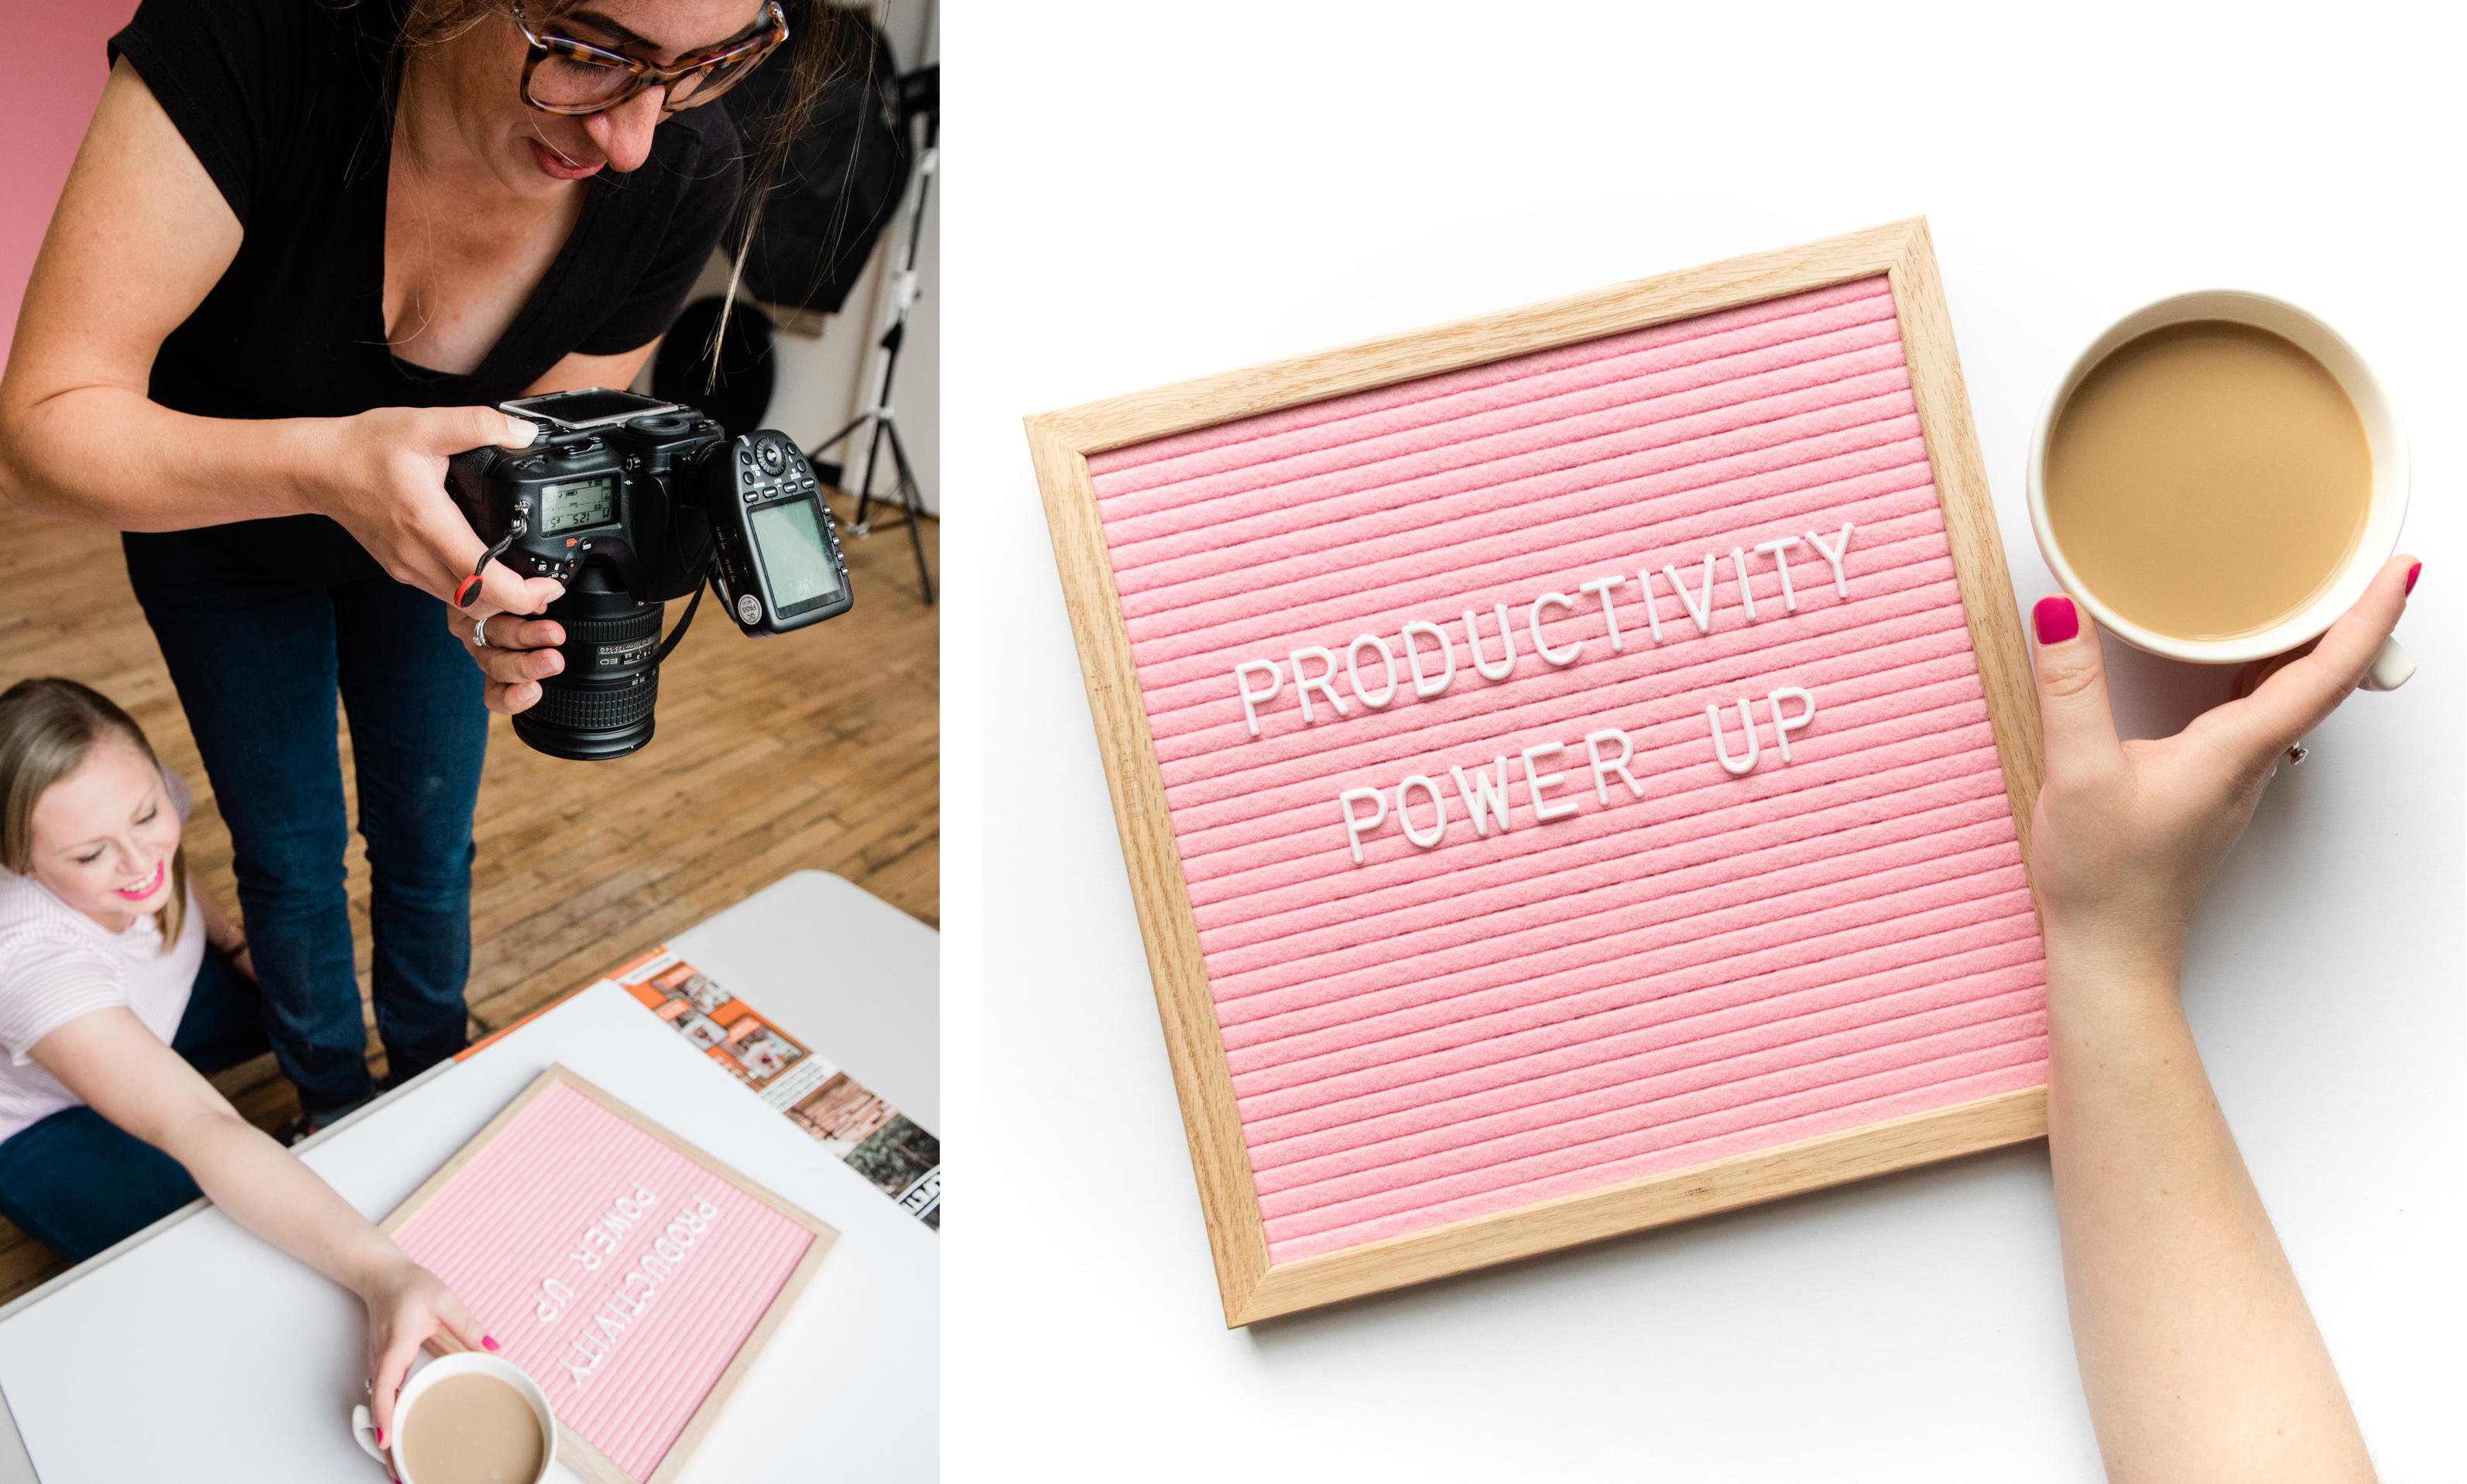 behind the scenes of jamie bannon photography brand shoot with the productivity zone, photographed by christina wesley photography.